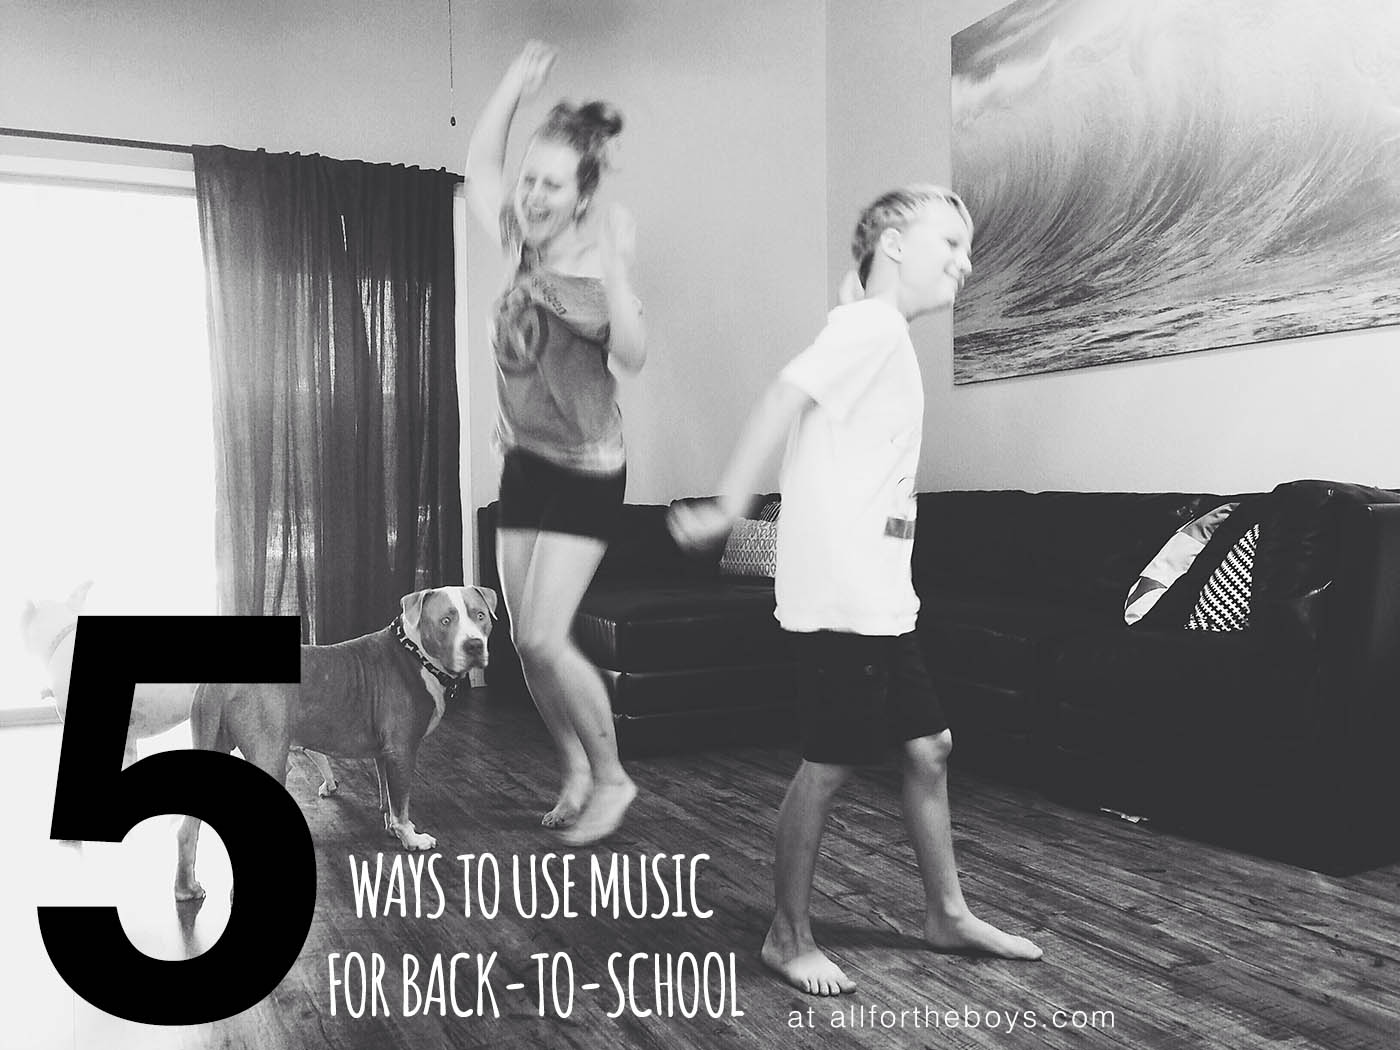 5 Ways to Use Music for Back-to-School